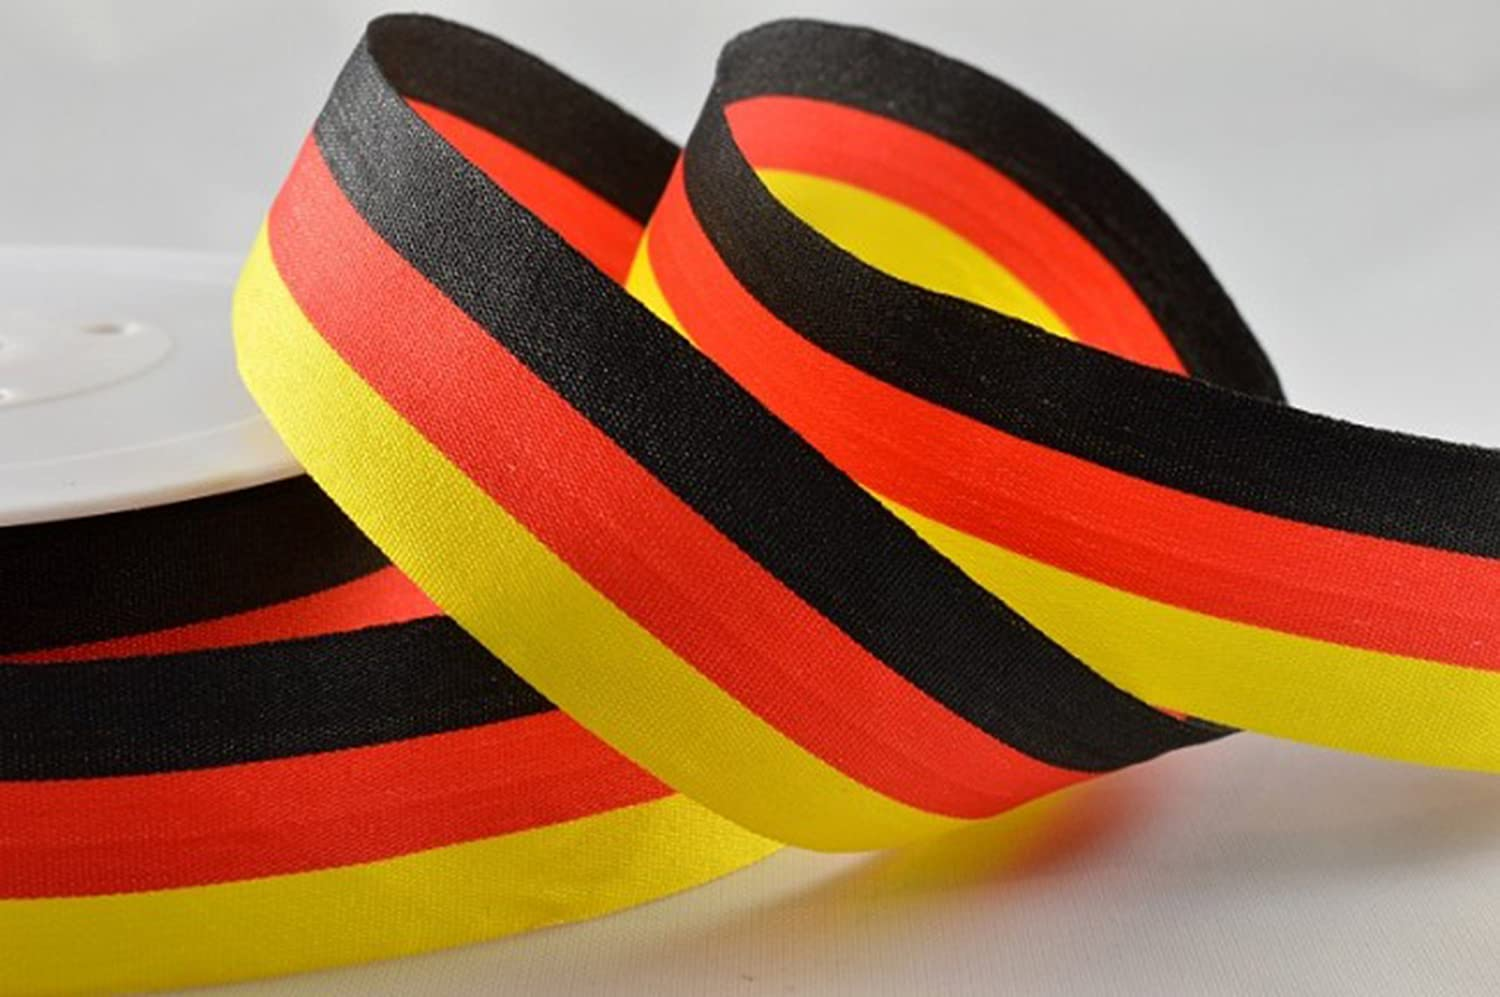 BEST German flag colours striped ribbon (tricolour) Black/red/yellow 25mm x 1 Mtr cut from roll, beautiful ribbon, ideal for gift wrapping presents, tree decoration, making cards, general decoration, celebrations, parties, arts and crafts. Fast service, q